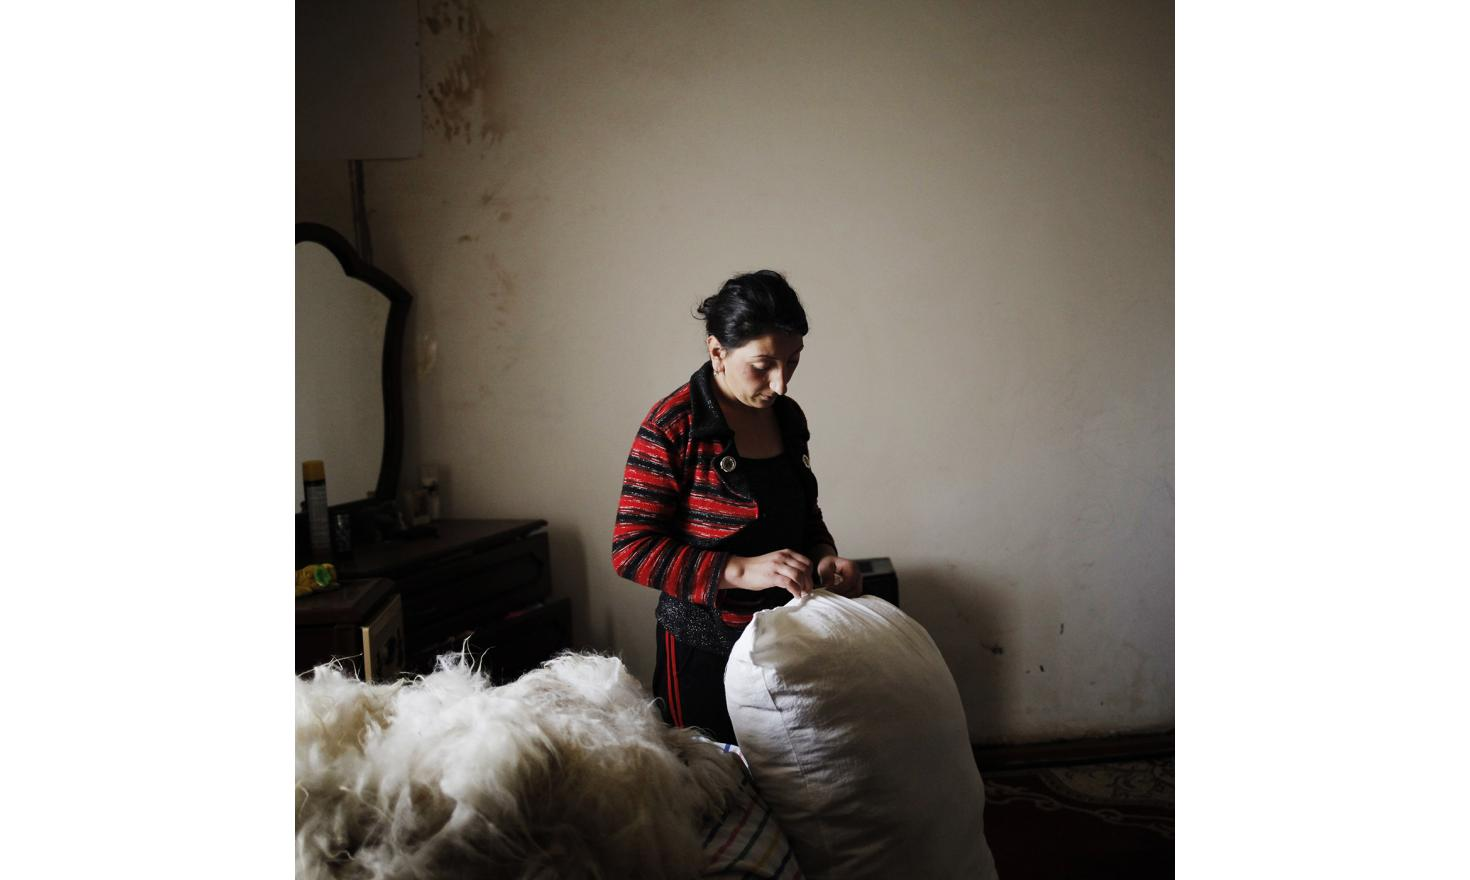 Early in the morning, Ruzanna prepares bed mattress for her children with sheep wool bought a few days ago.